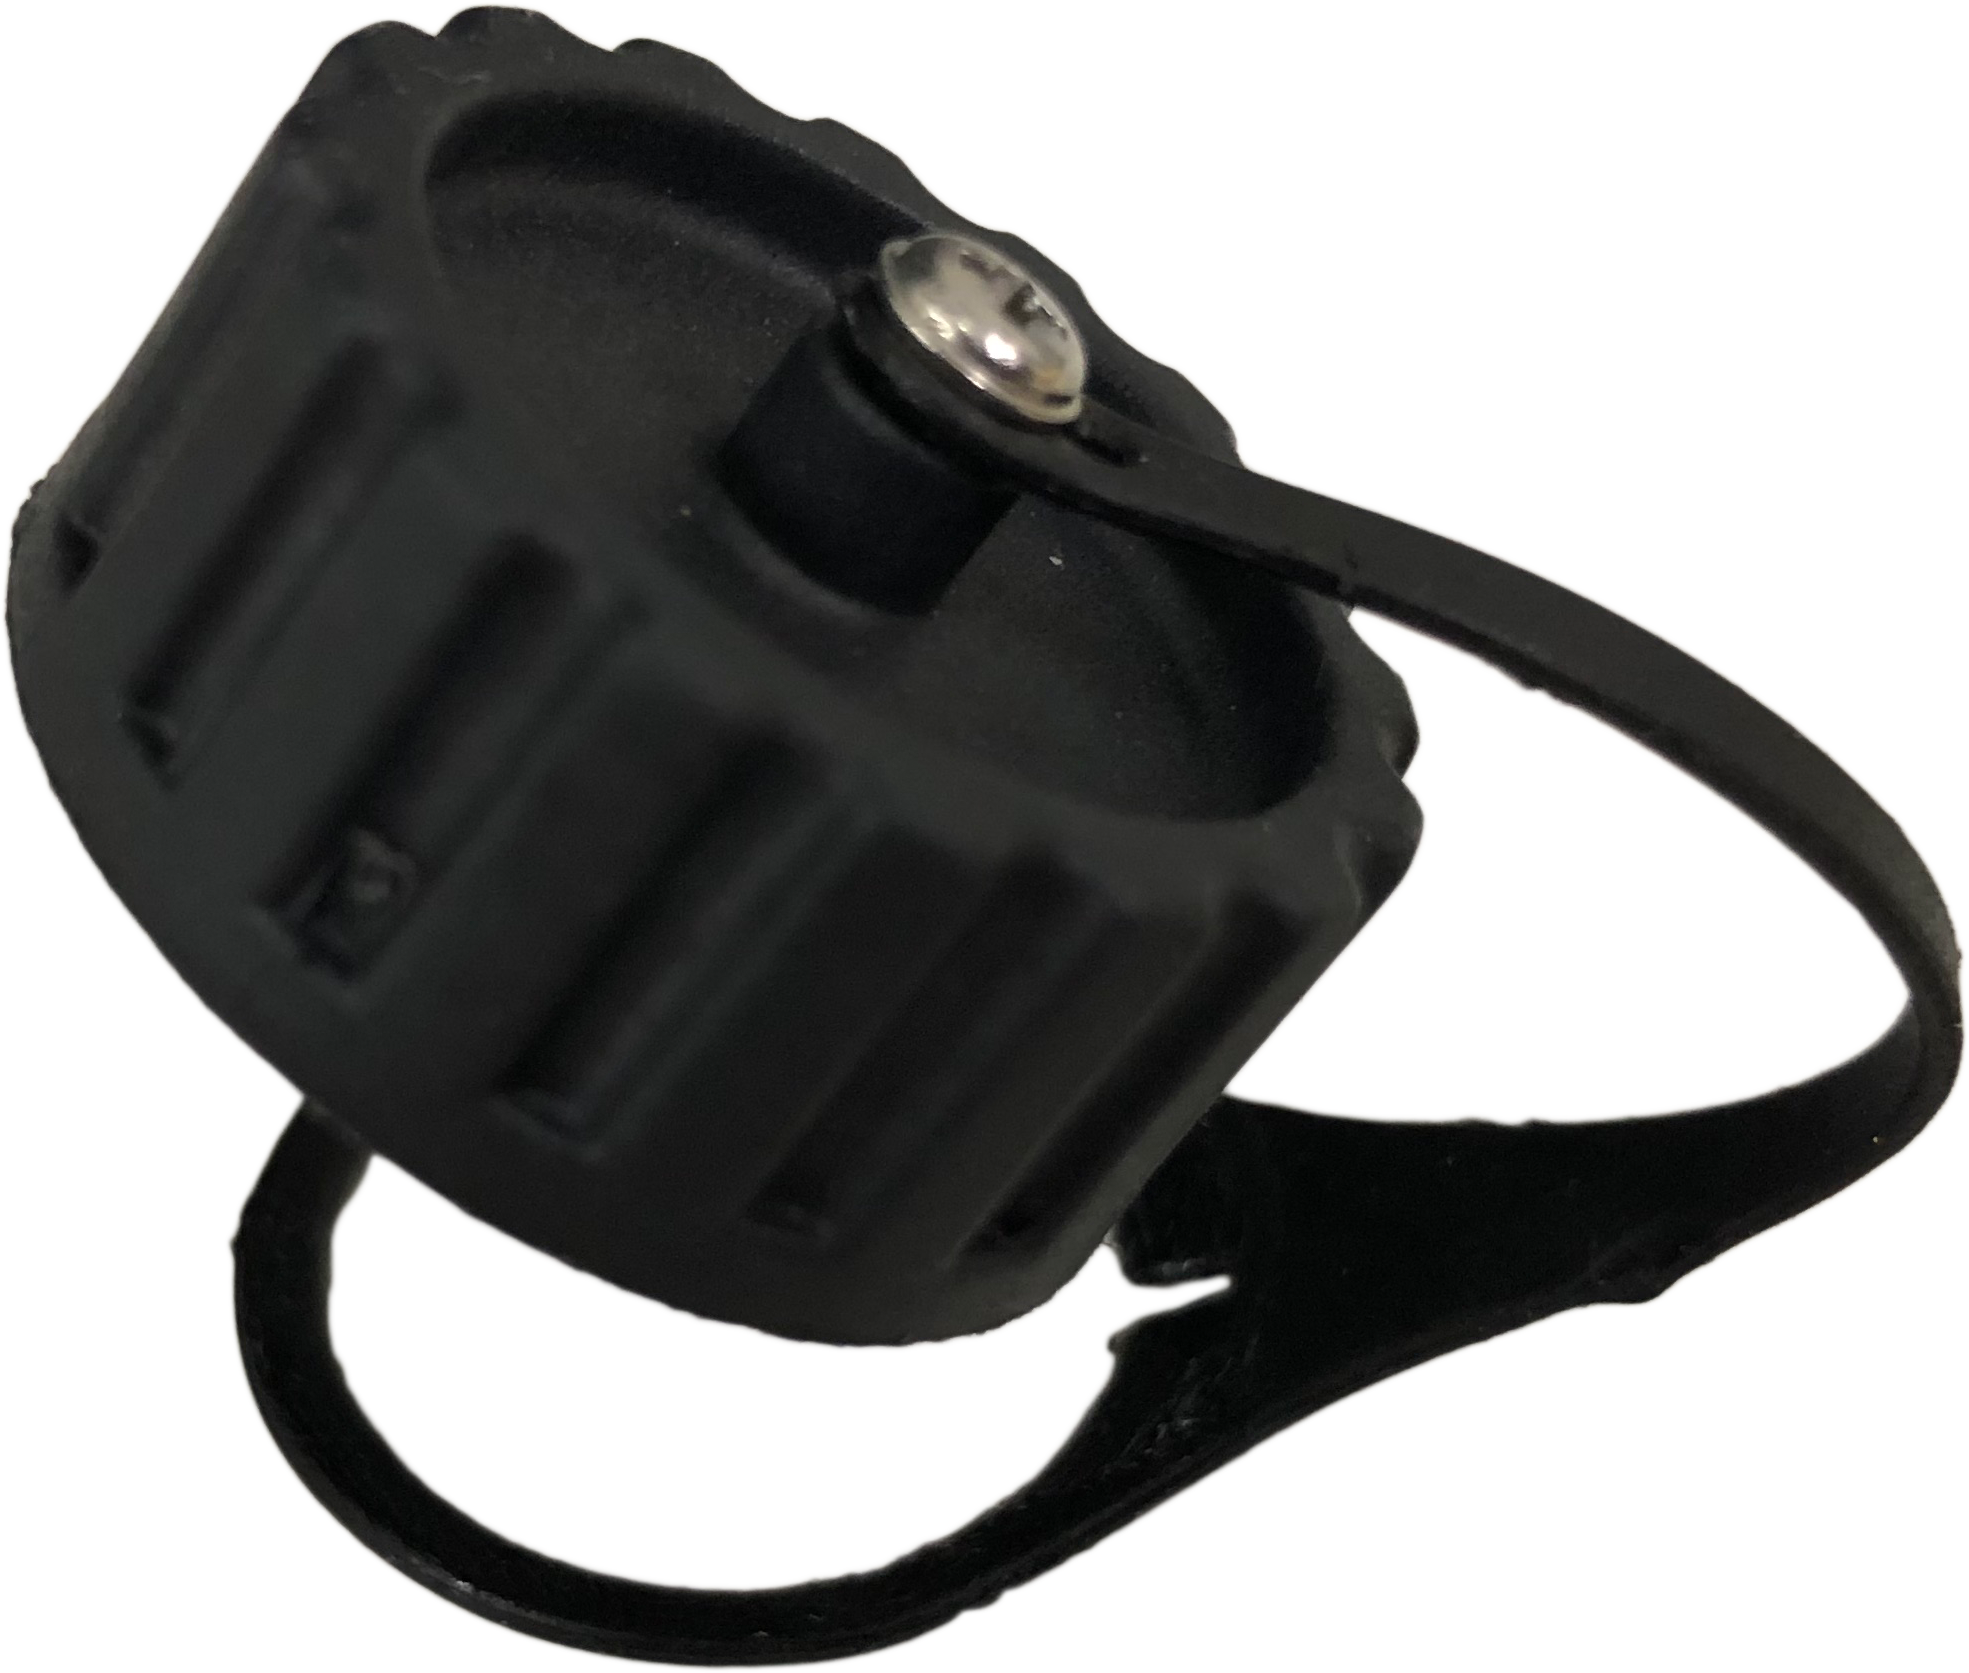 connector-cap-motor-and-outboard-battery.png